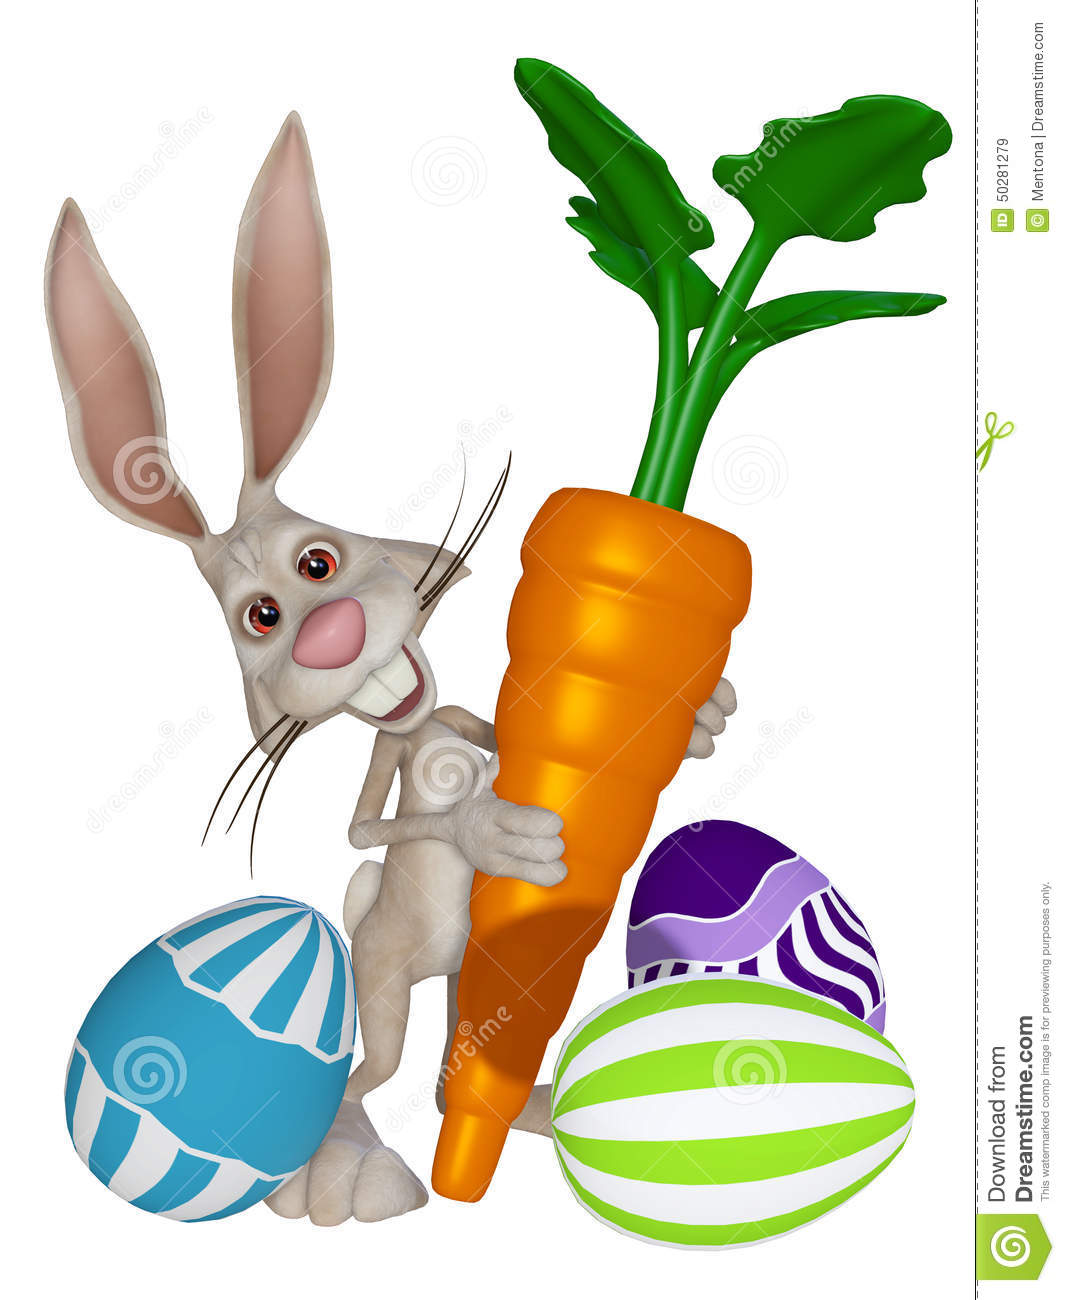 Cartoon Easter Bunny With Easter Eggs And A Carrot Stock.